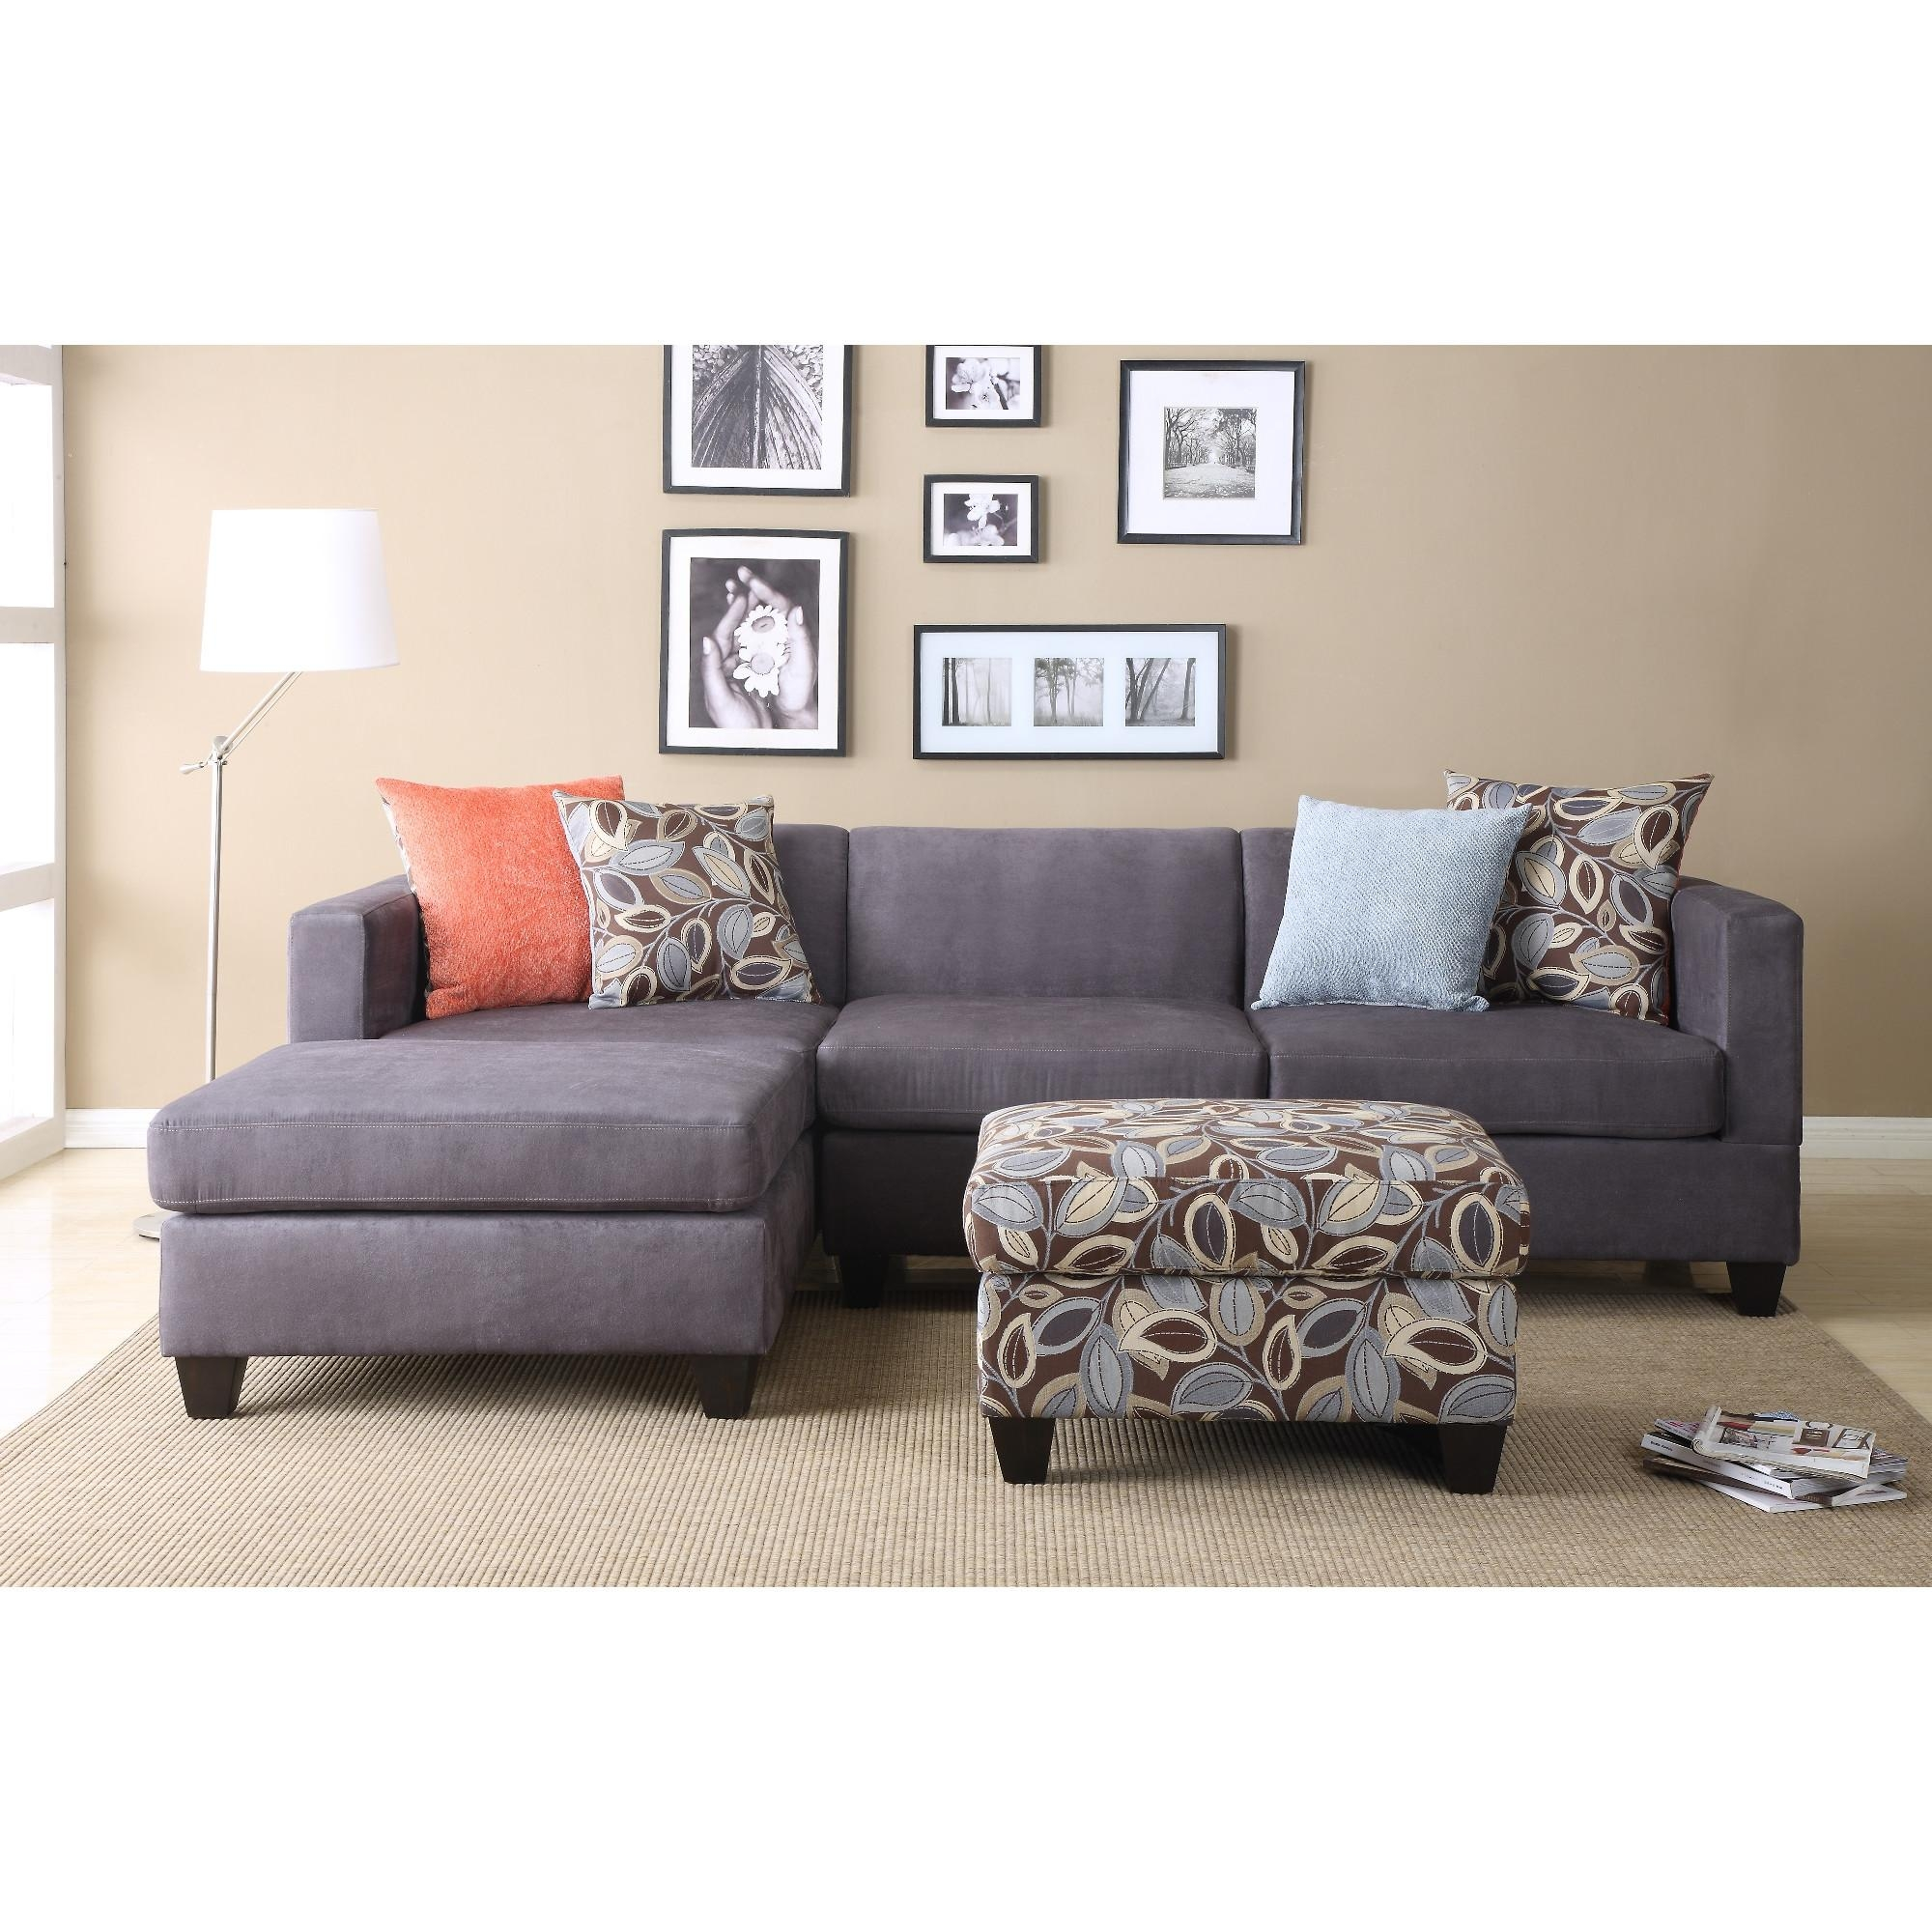 Sofas Center : Singular Cindy Crawford Sectional Sofa Pictures With Cindy Crawford Sofas (View 18 of 20)